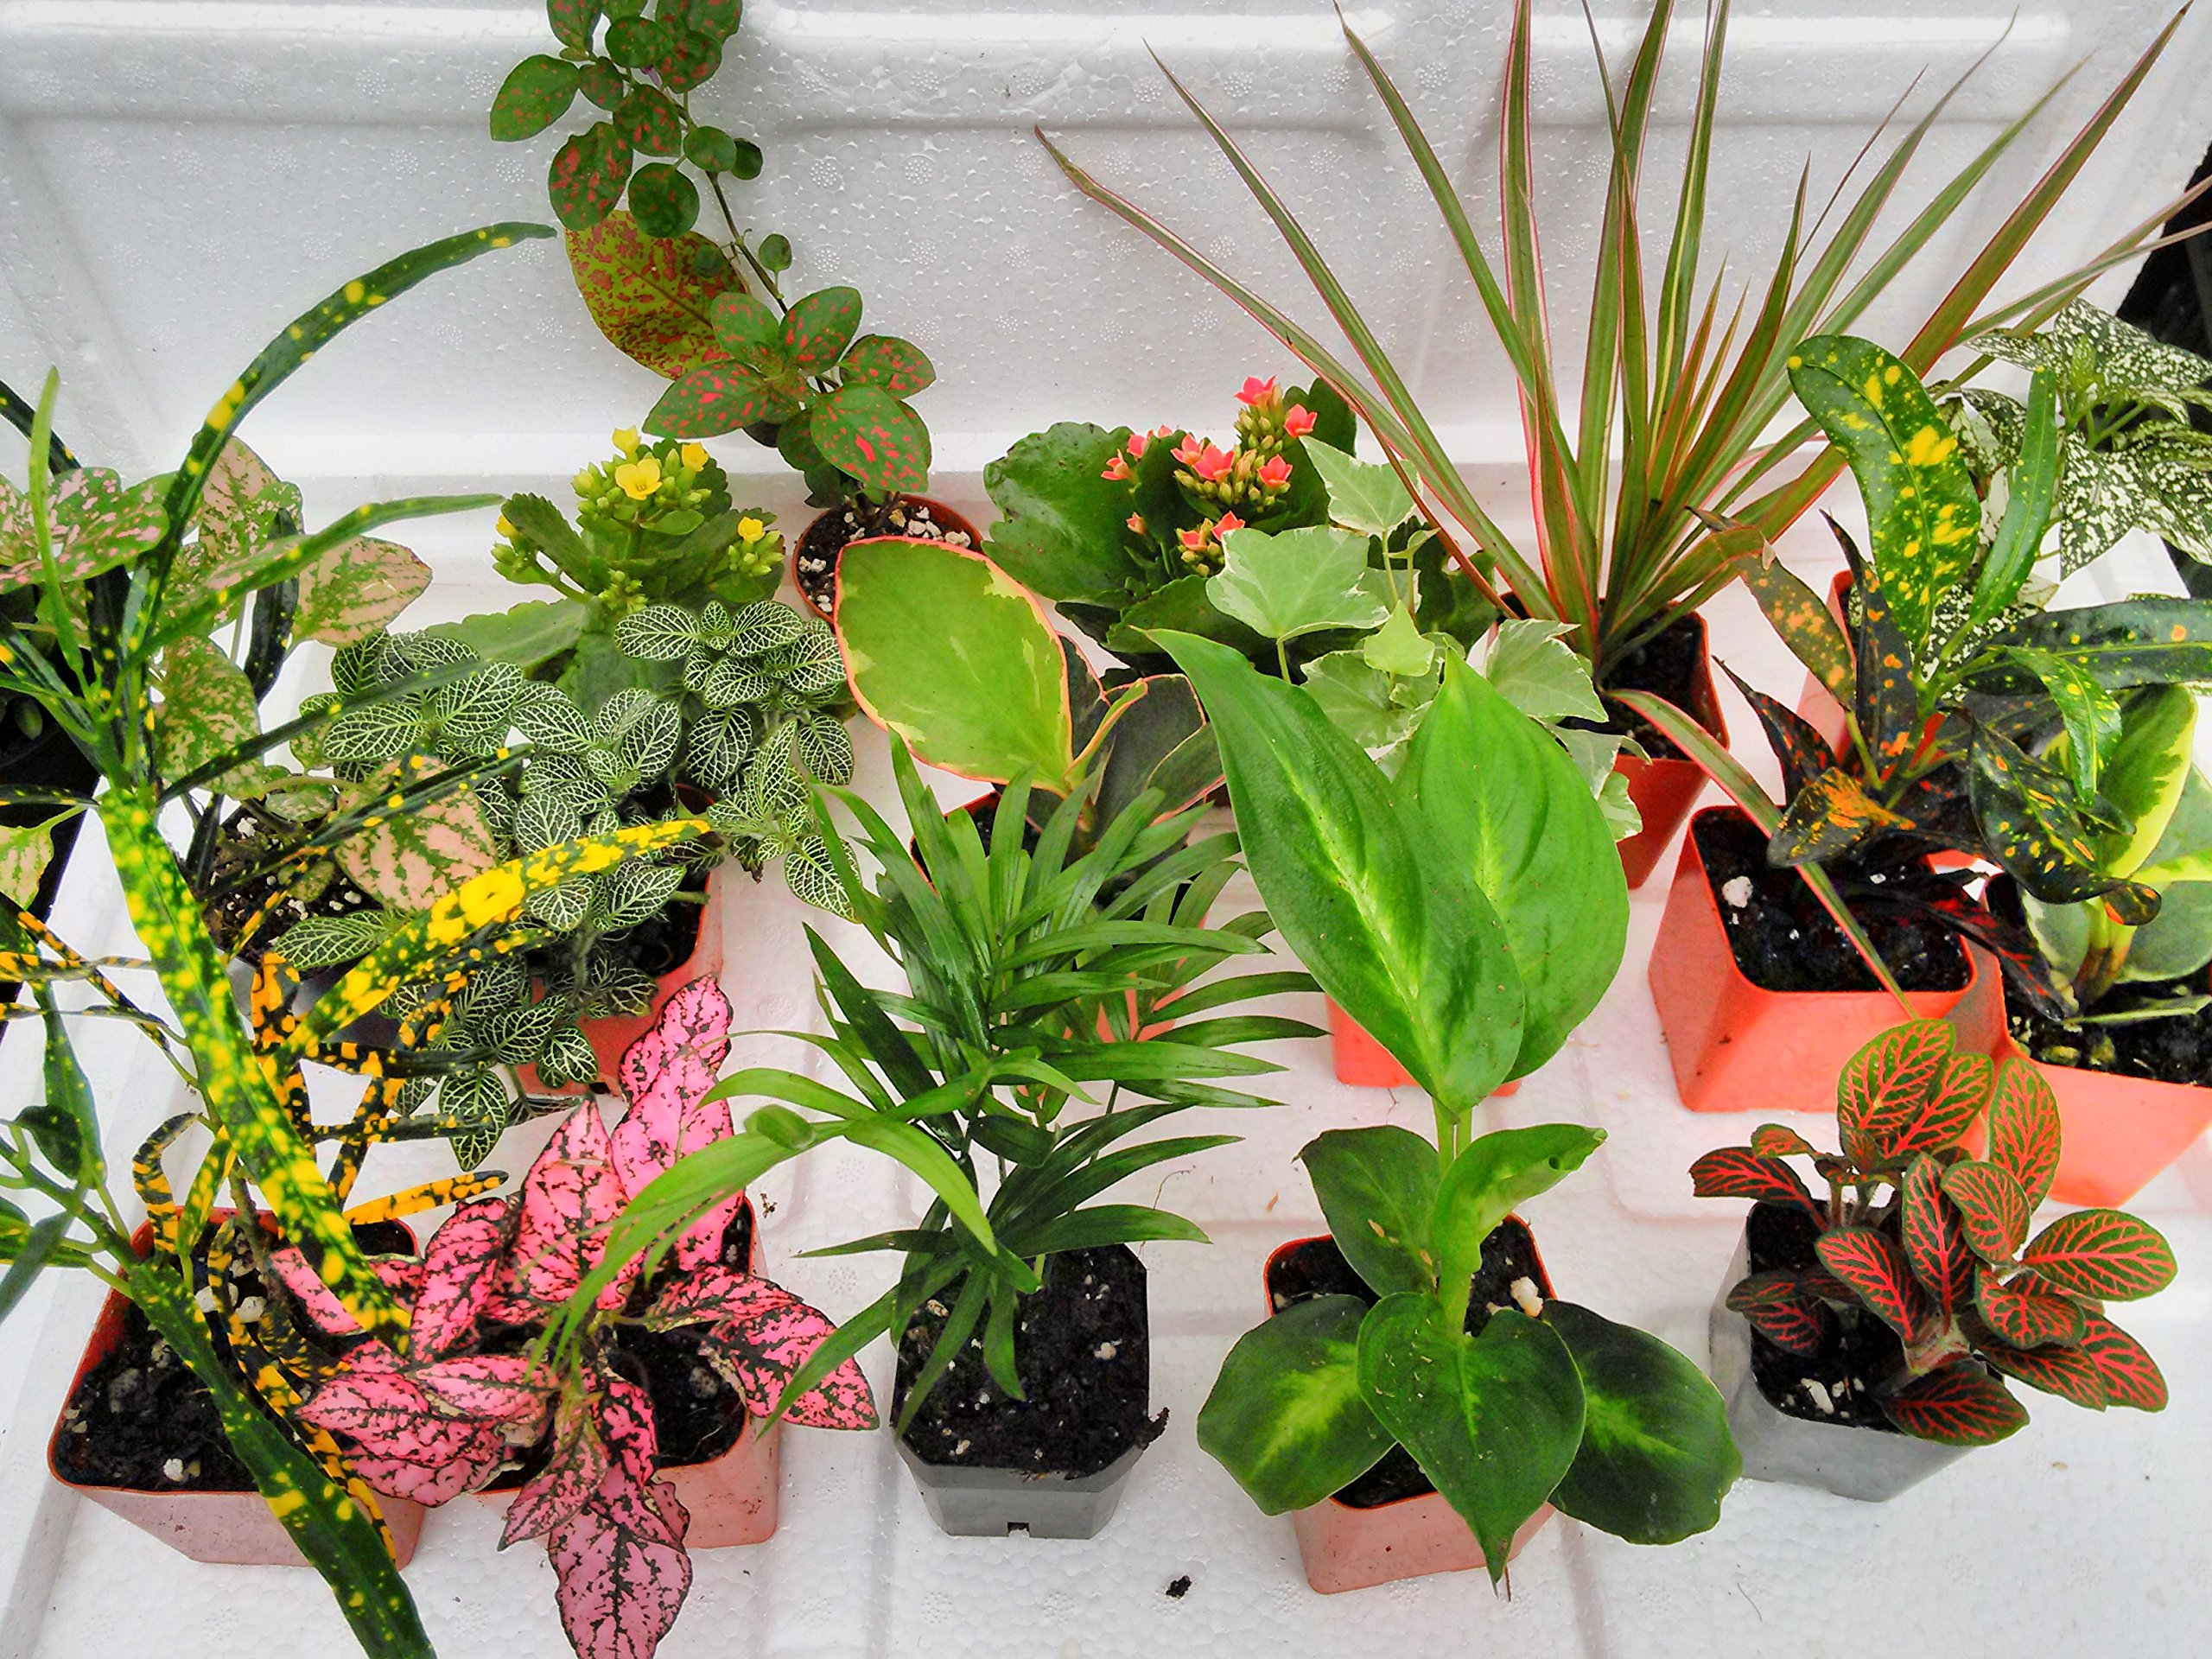 Terrarium & Fairy Garden Plants - 8 Plants in 2.5 (Is Approximately 4 to 6 Inches Height of the Plant) by JM BAMBOO (Image #1)